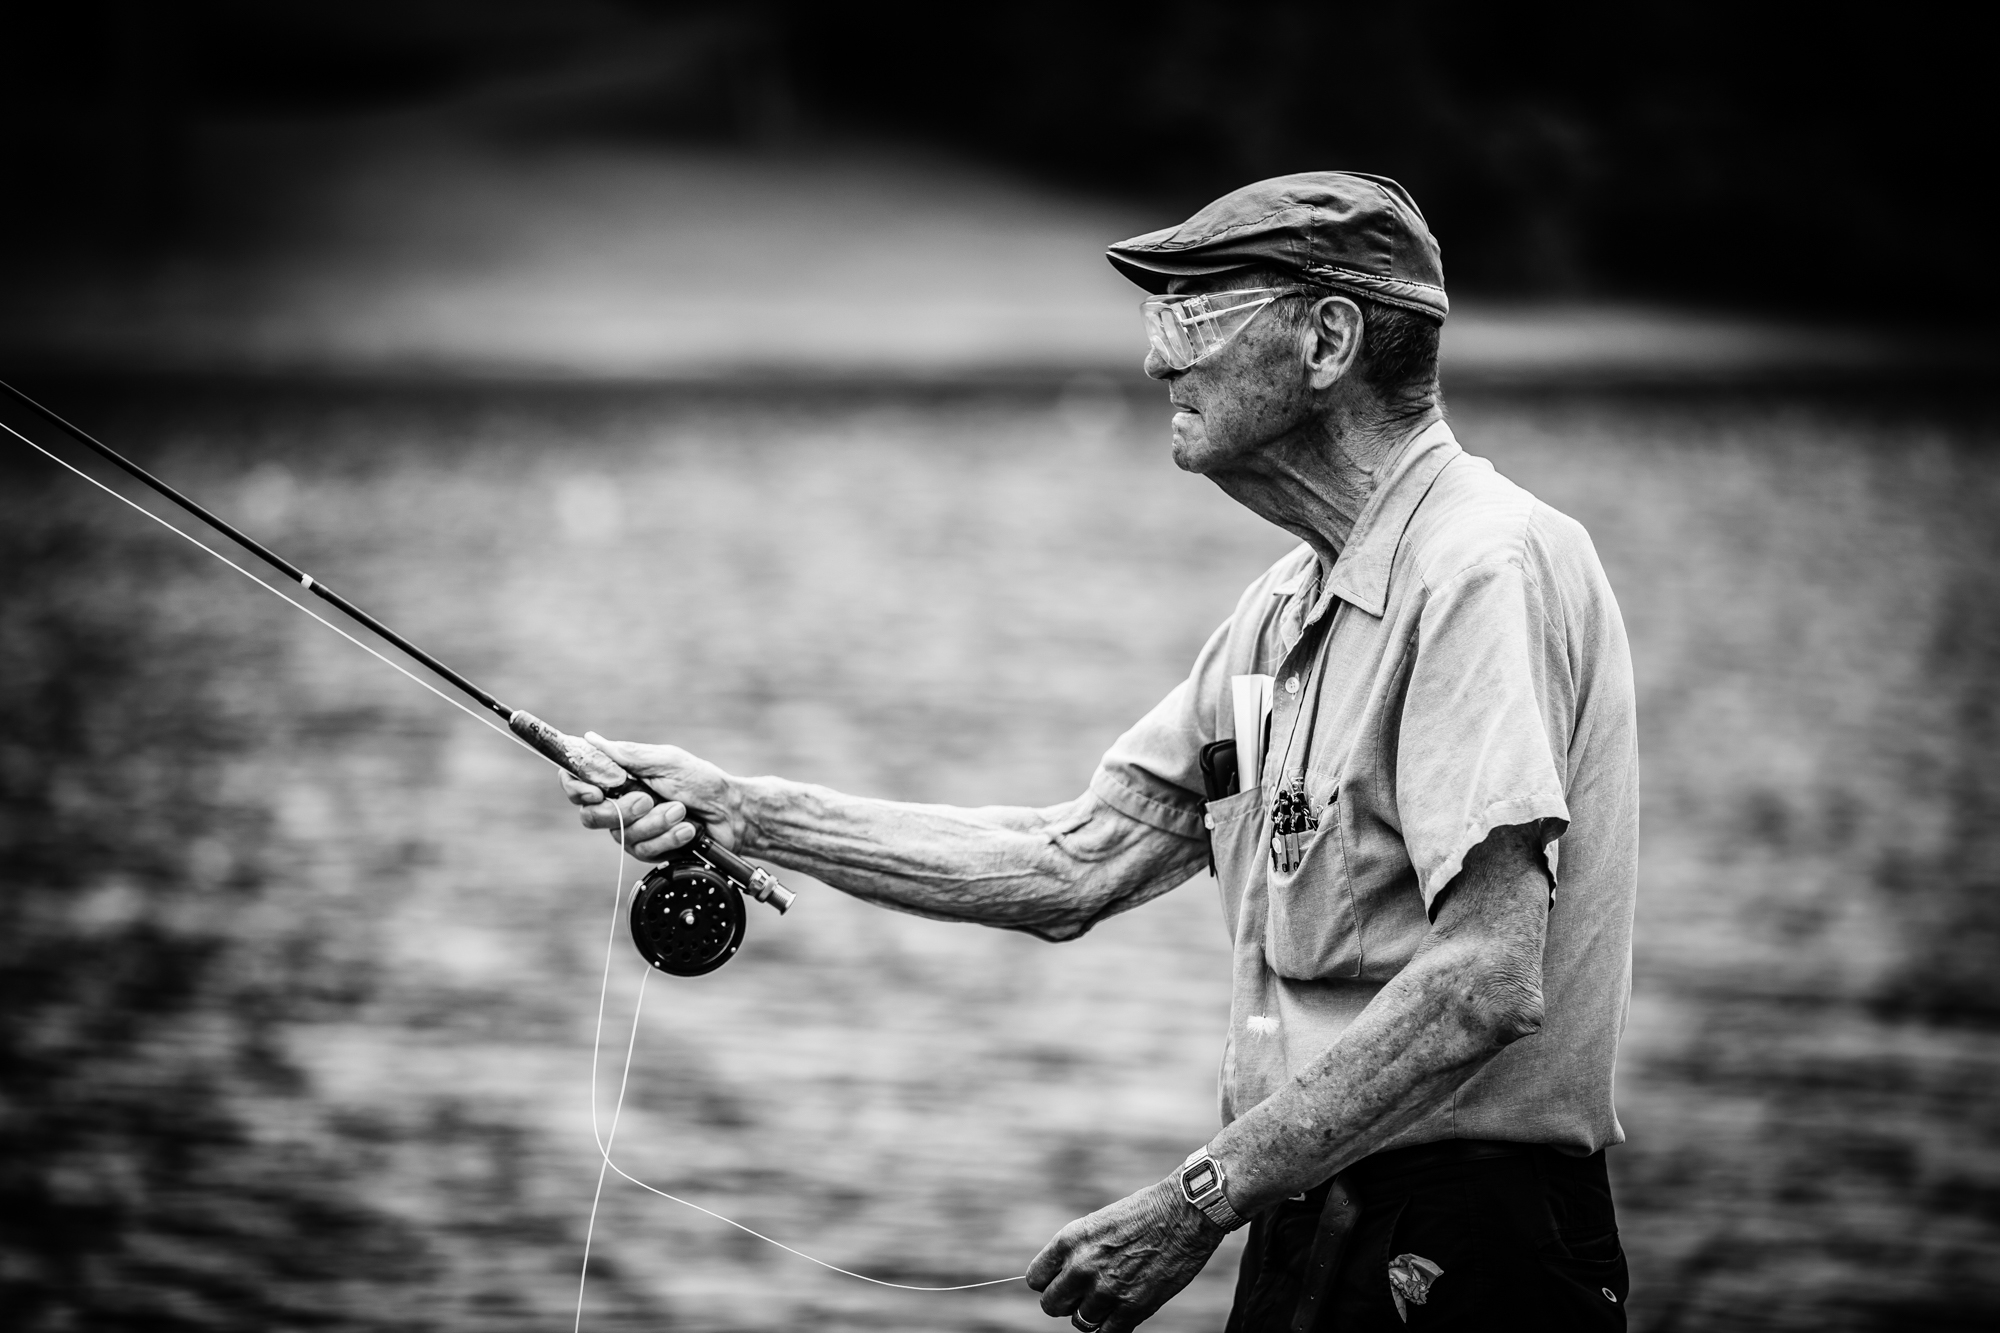 Photographer Nathan Ball snapped this shot, which illustrates the lifelong endurance of our sport in the lives of many anglers, at the 2014 American Casting Association championship.